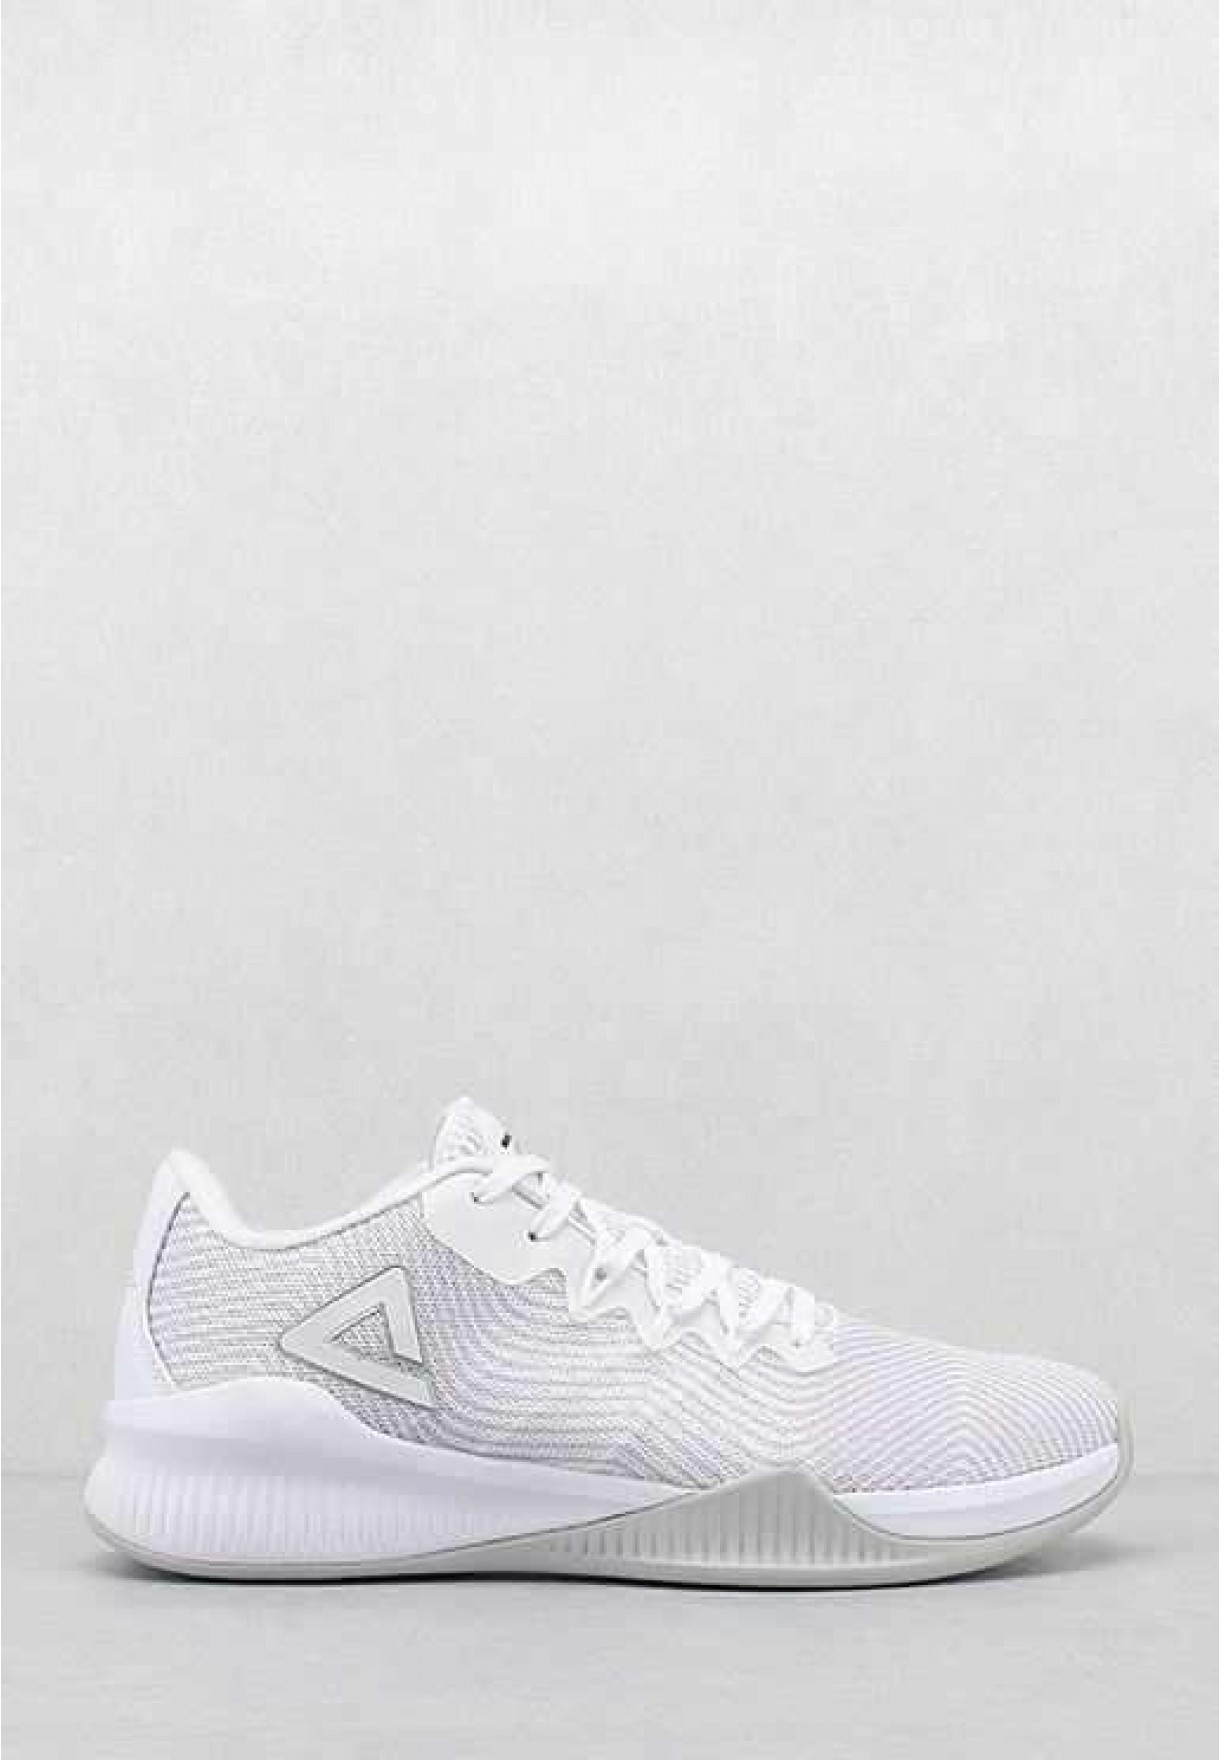 Terrence Romeo Shoes